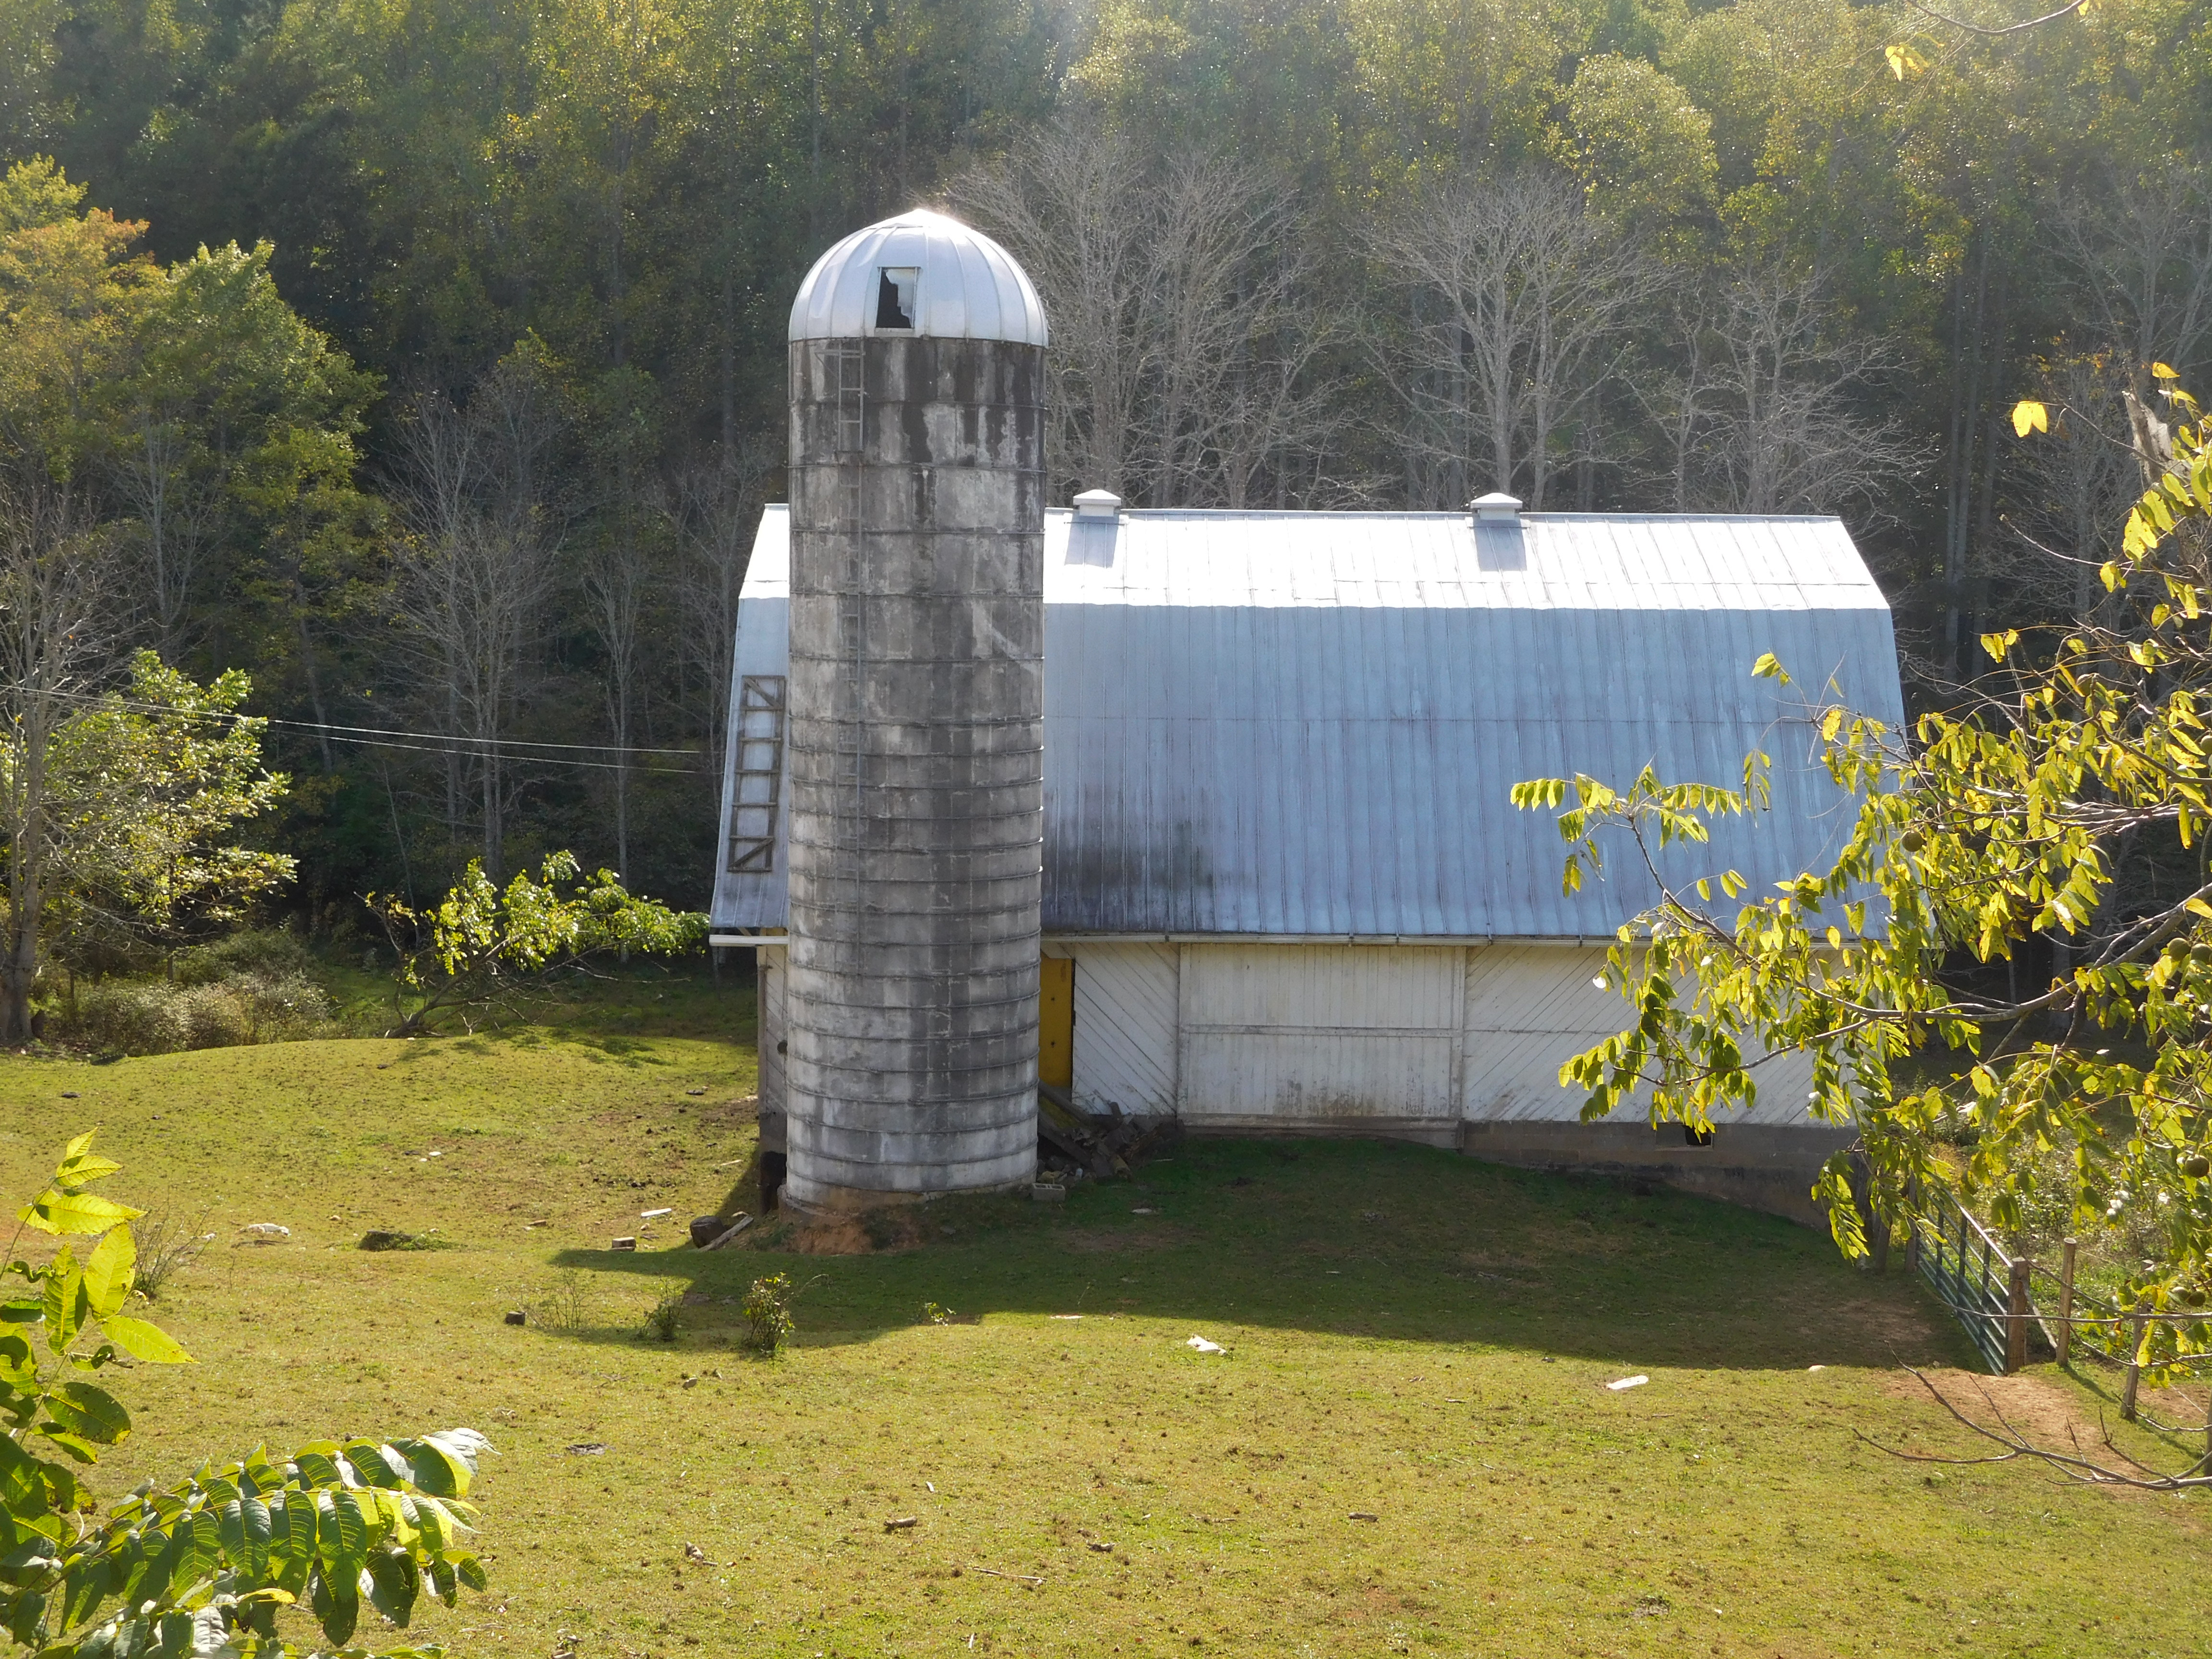 Yancey NC95_007-Old-Barn-and-Silo